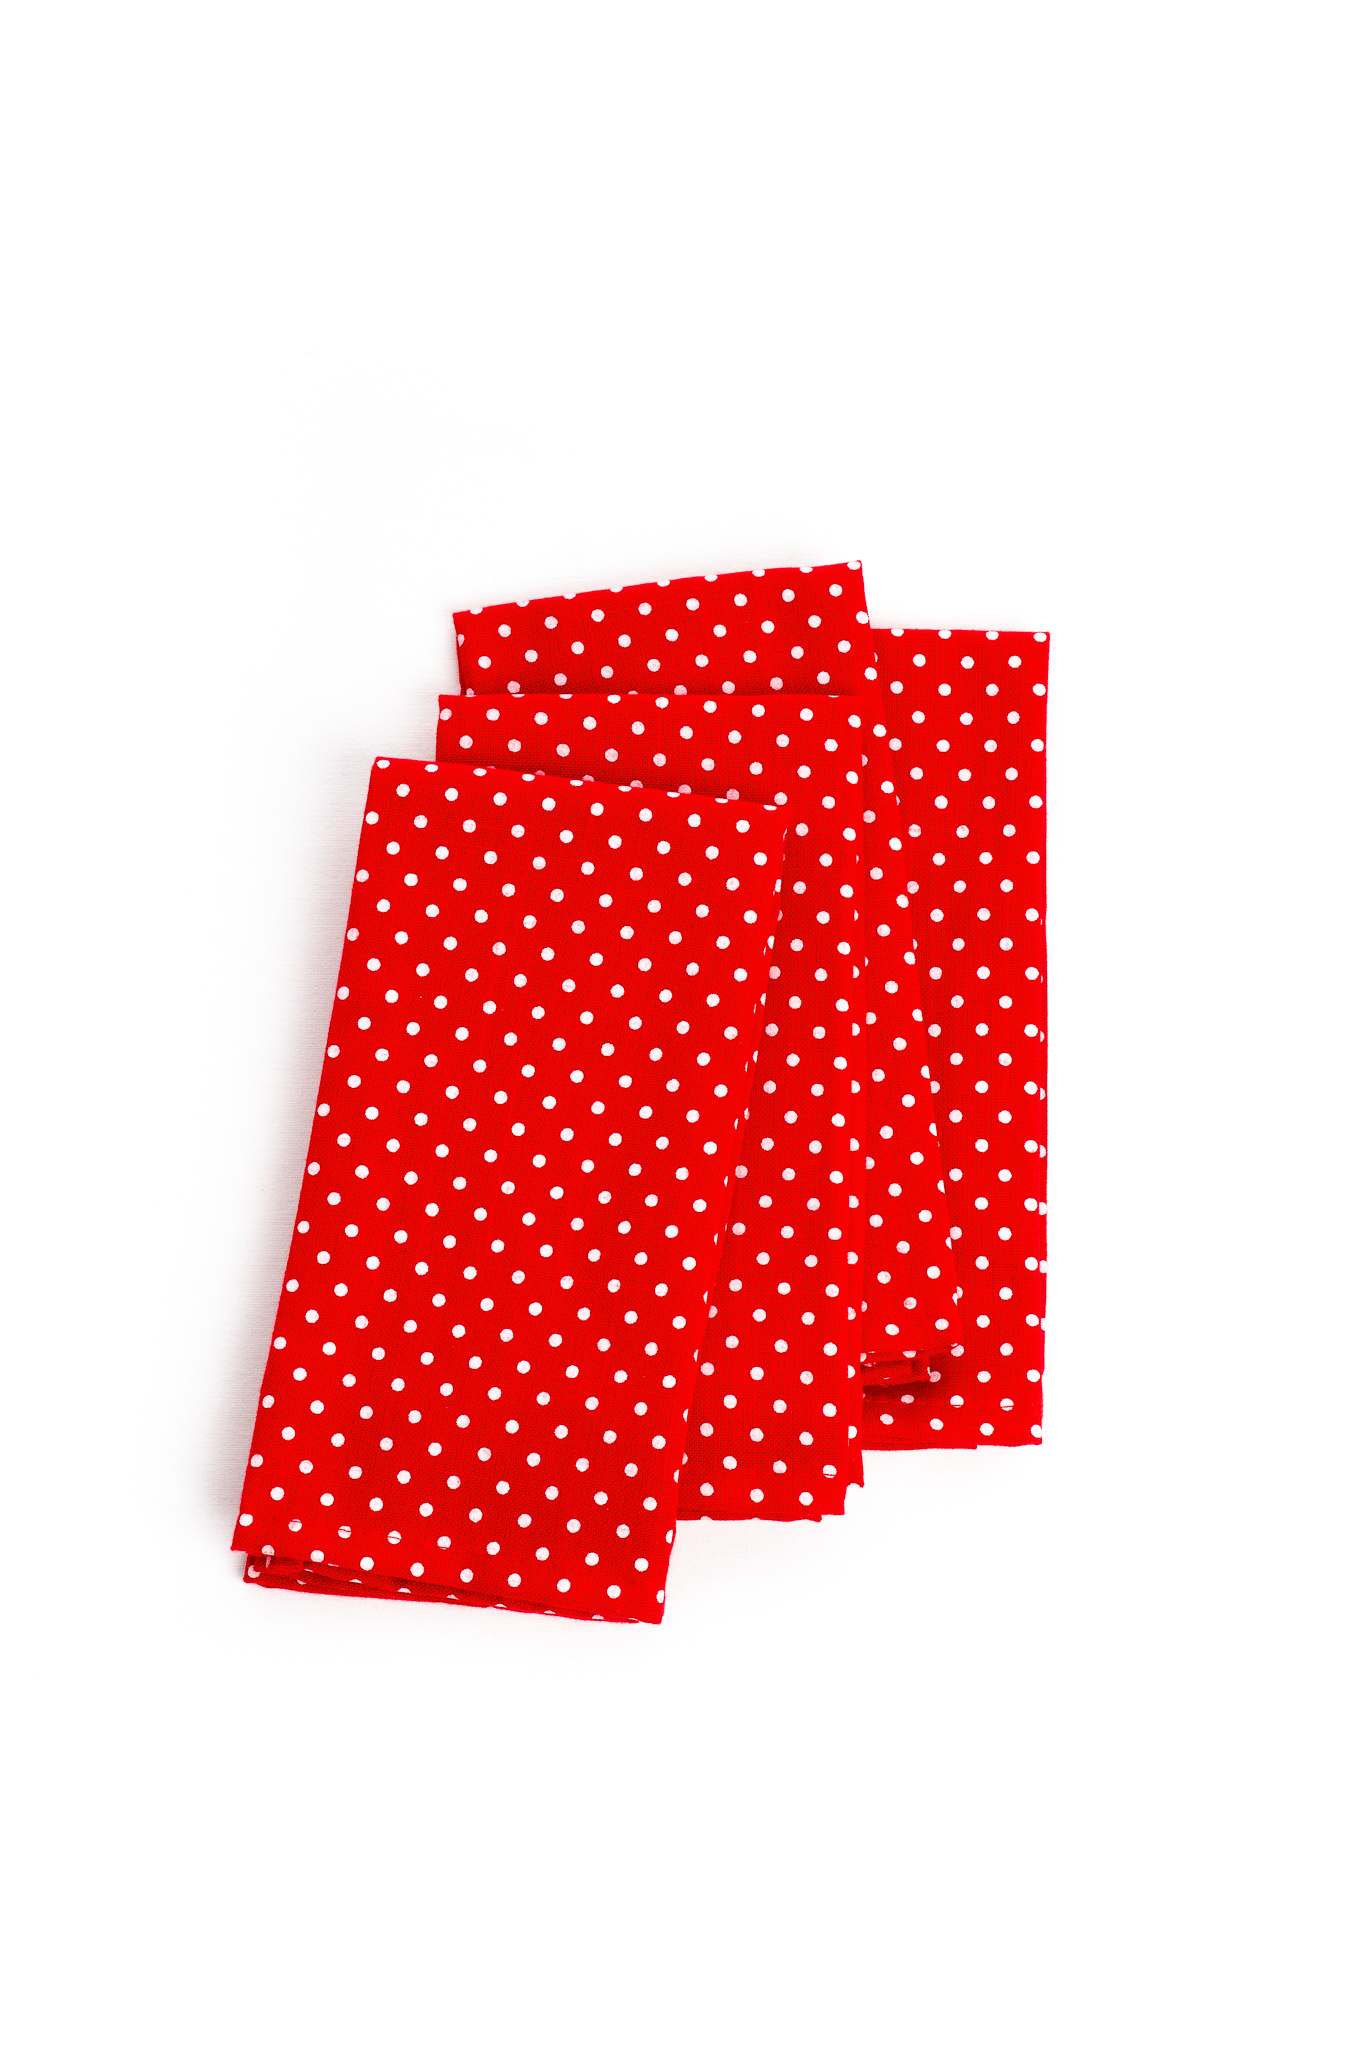 Table Napkins In Red With White Dots Set Of 4 3 5 Set